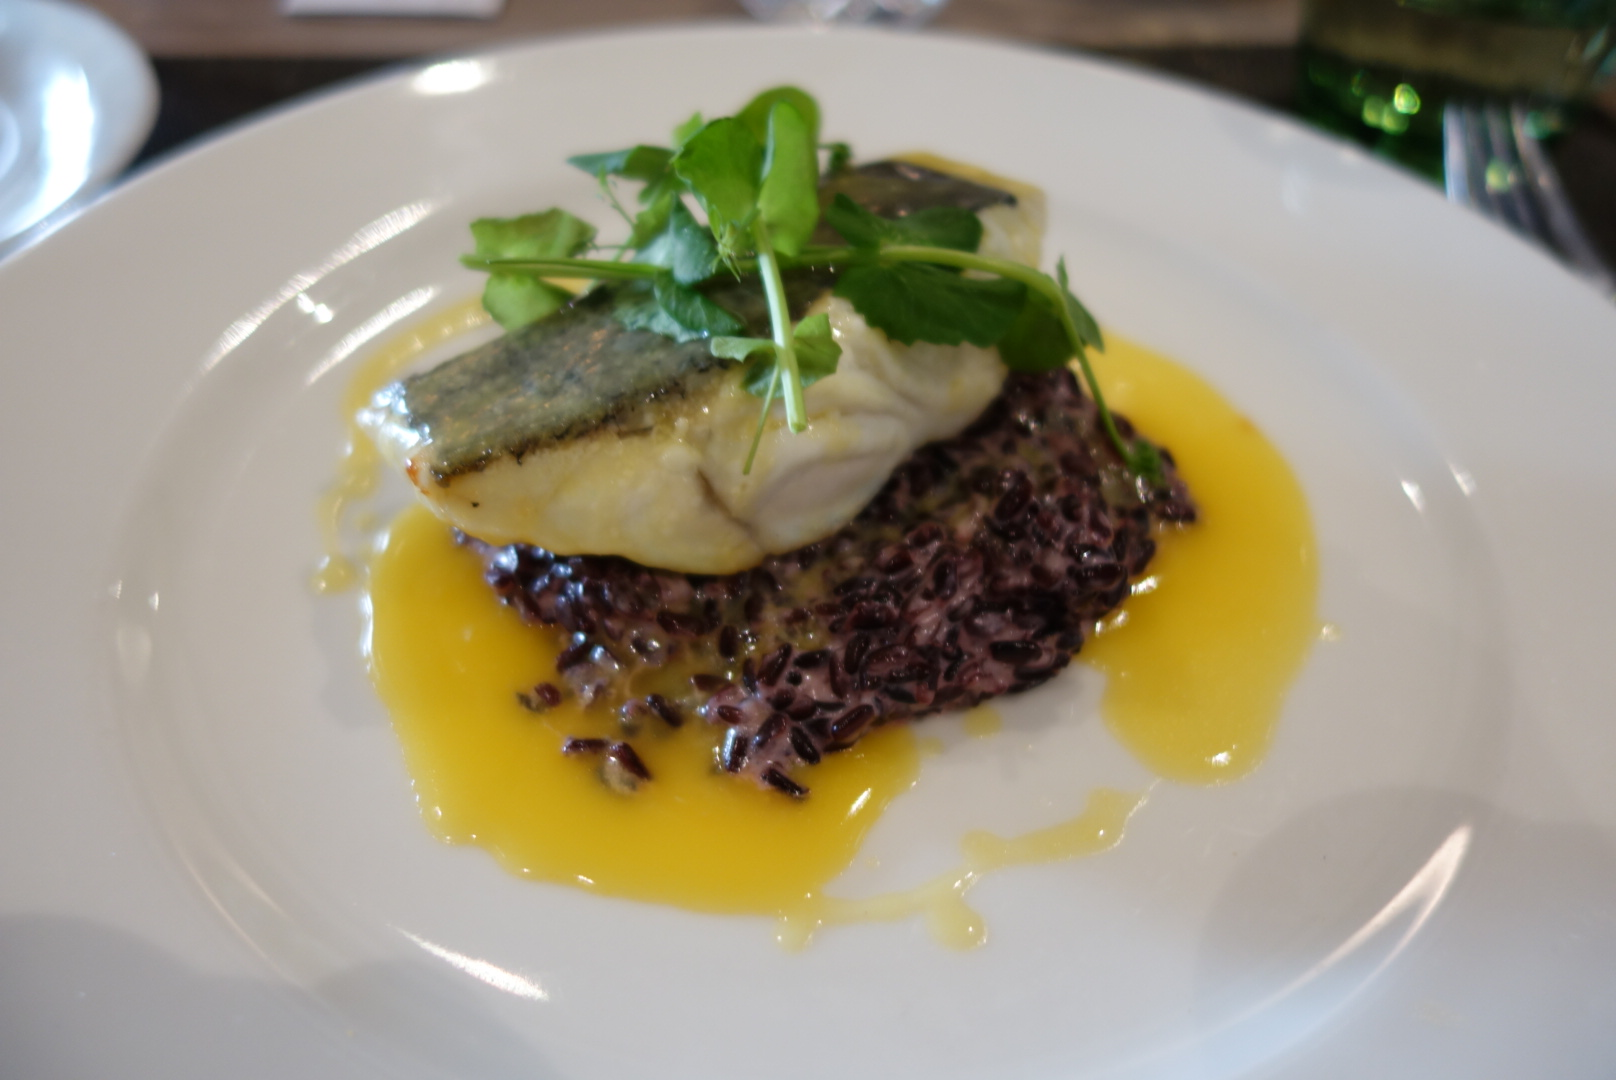 Fish with black rice and orange butter